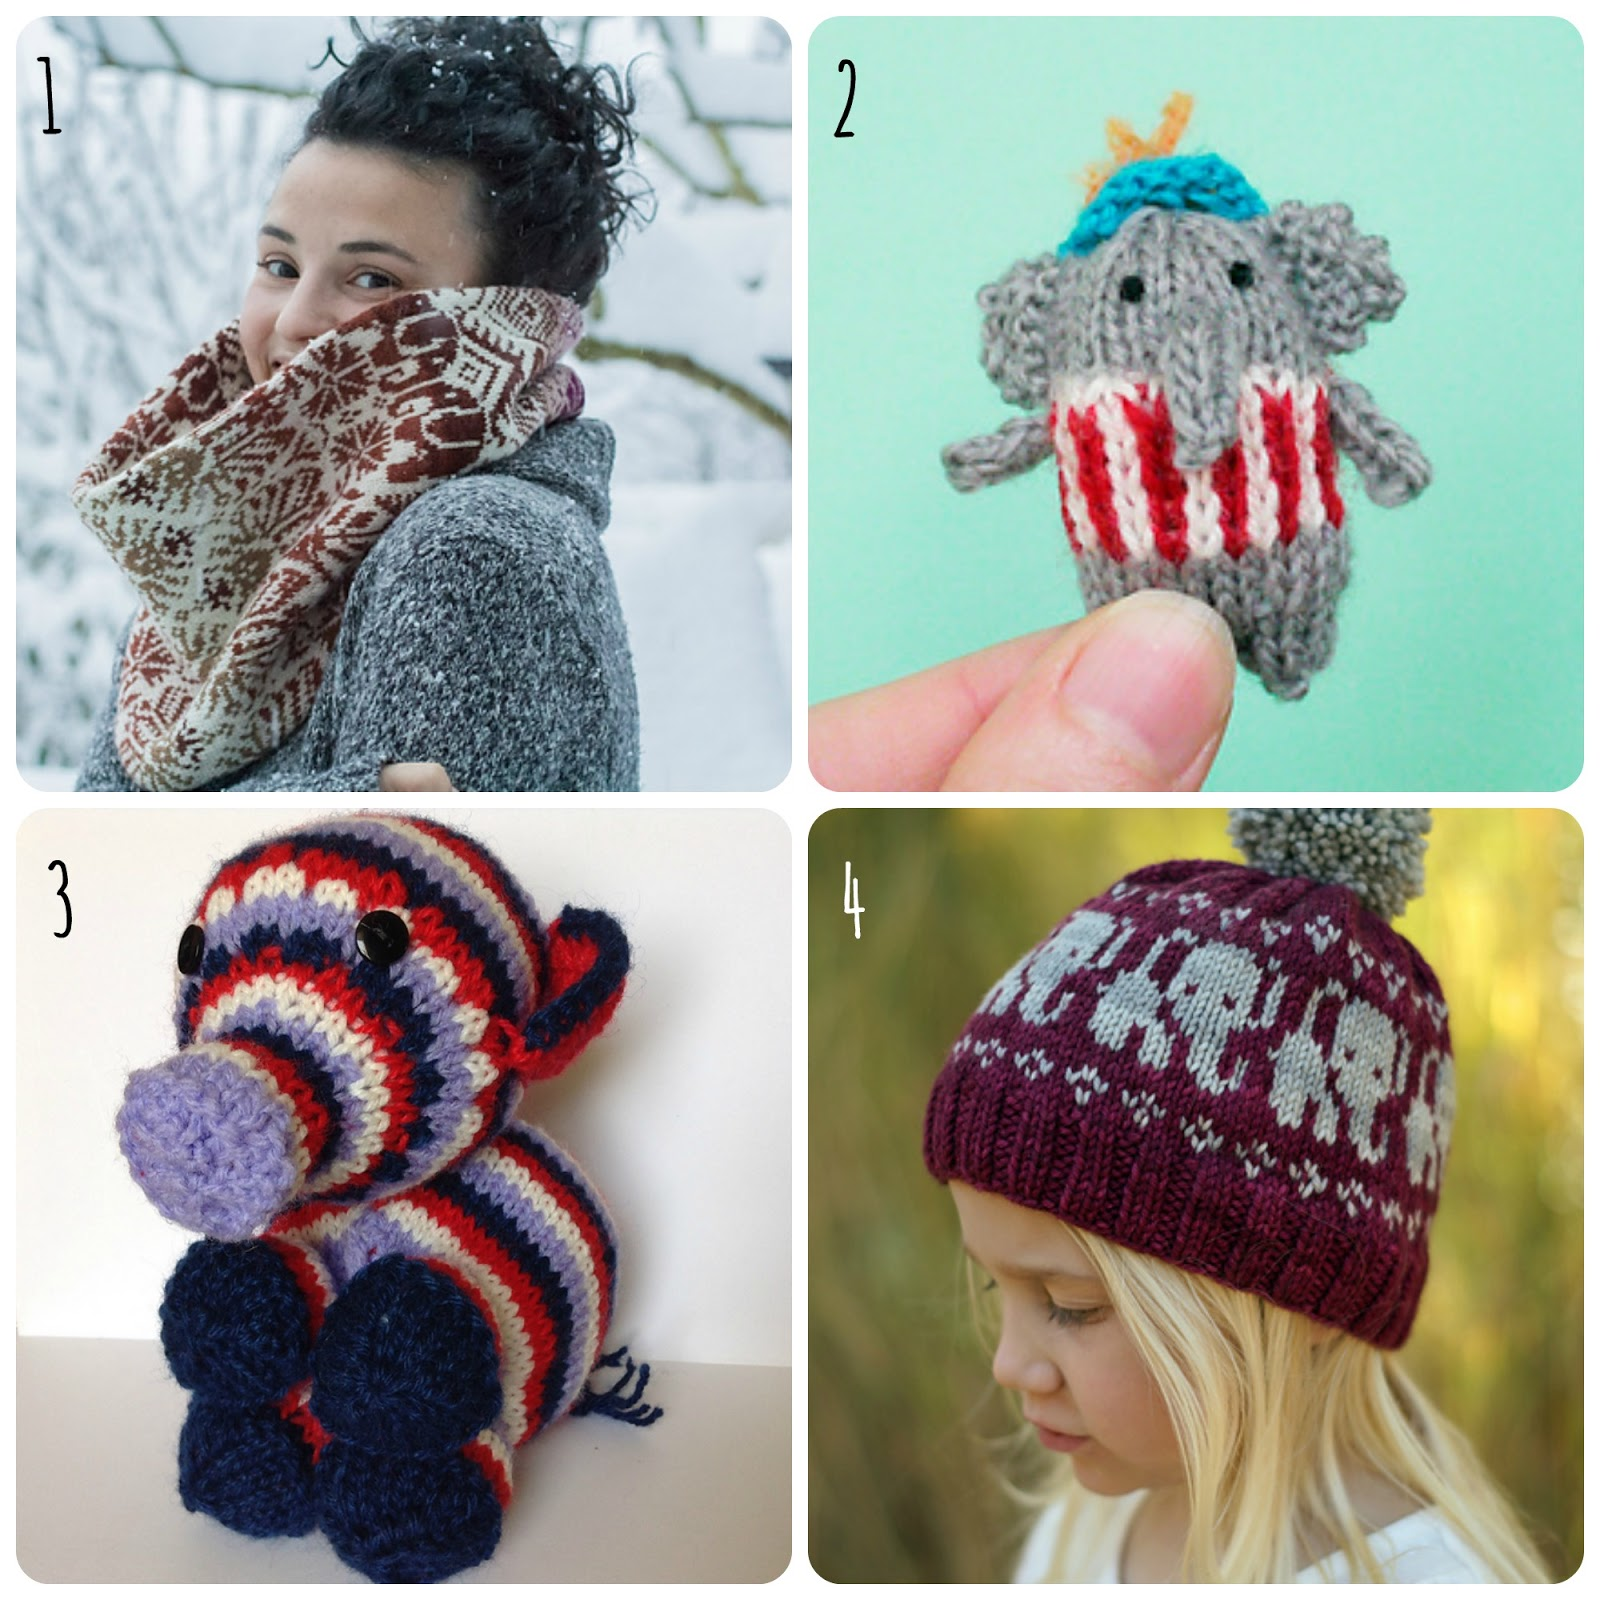 Knitting Inspiration : Abso knitting lutely